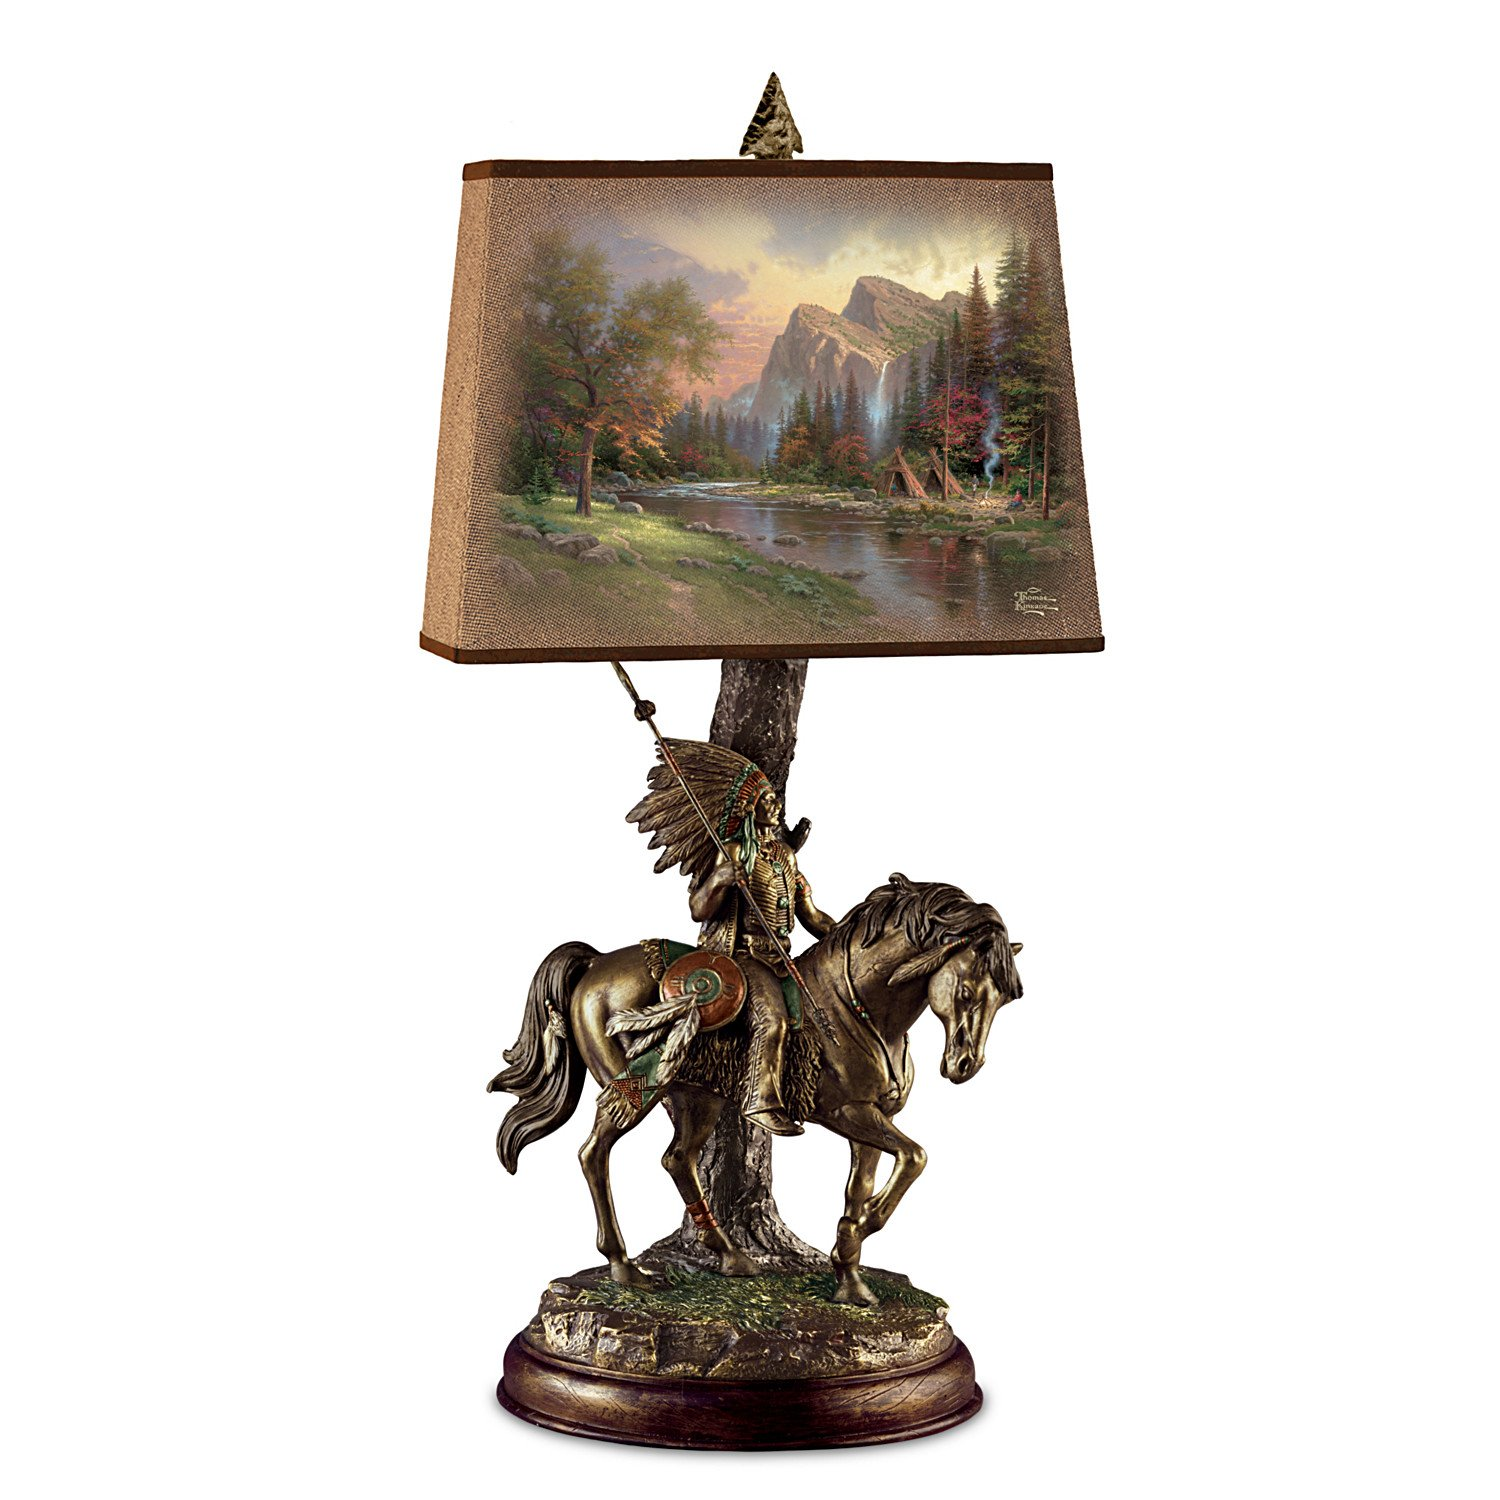 Thomas Kinkade Native Journeys Sculpture Lamp With Art Shade by The Bradford Exchange